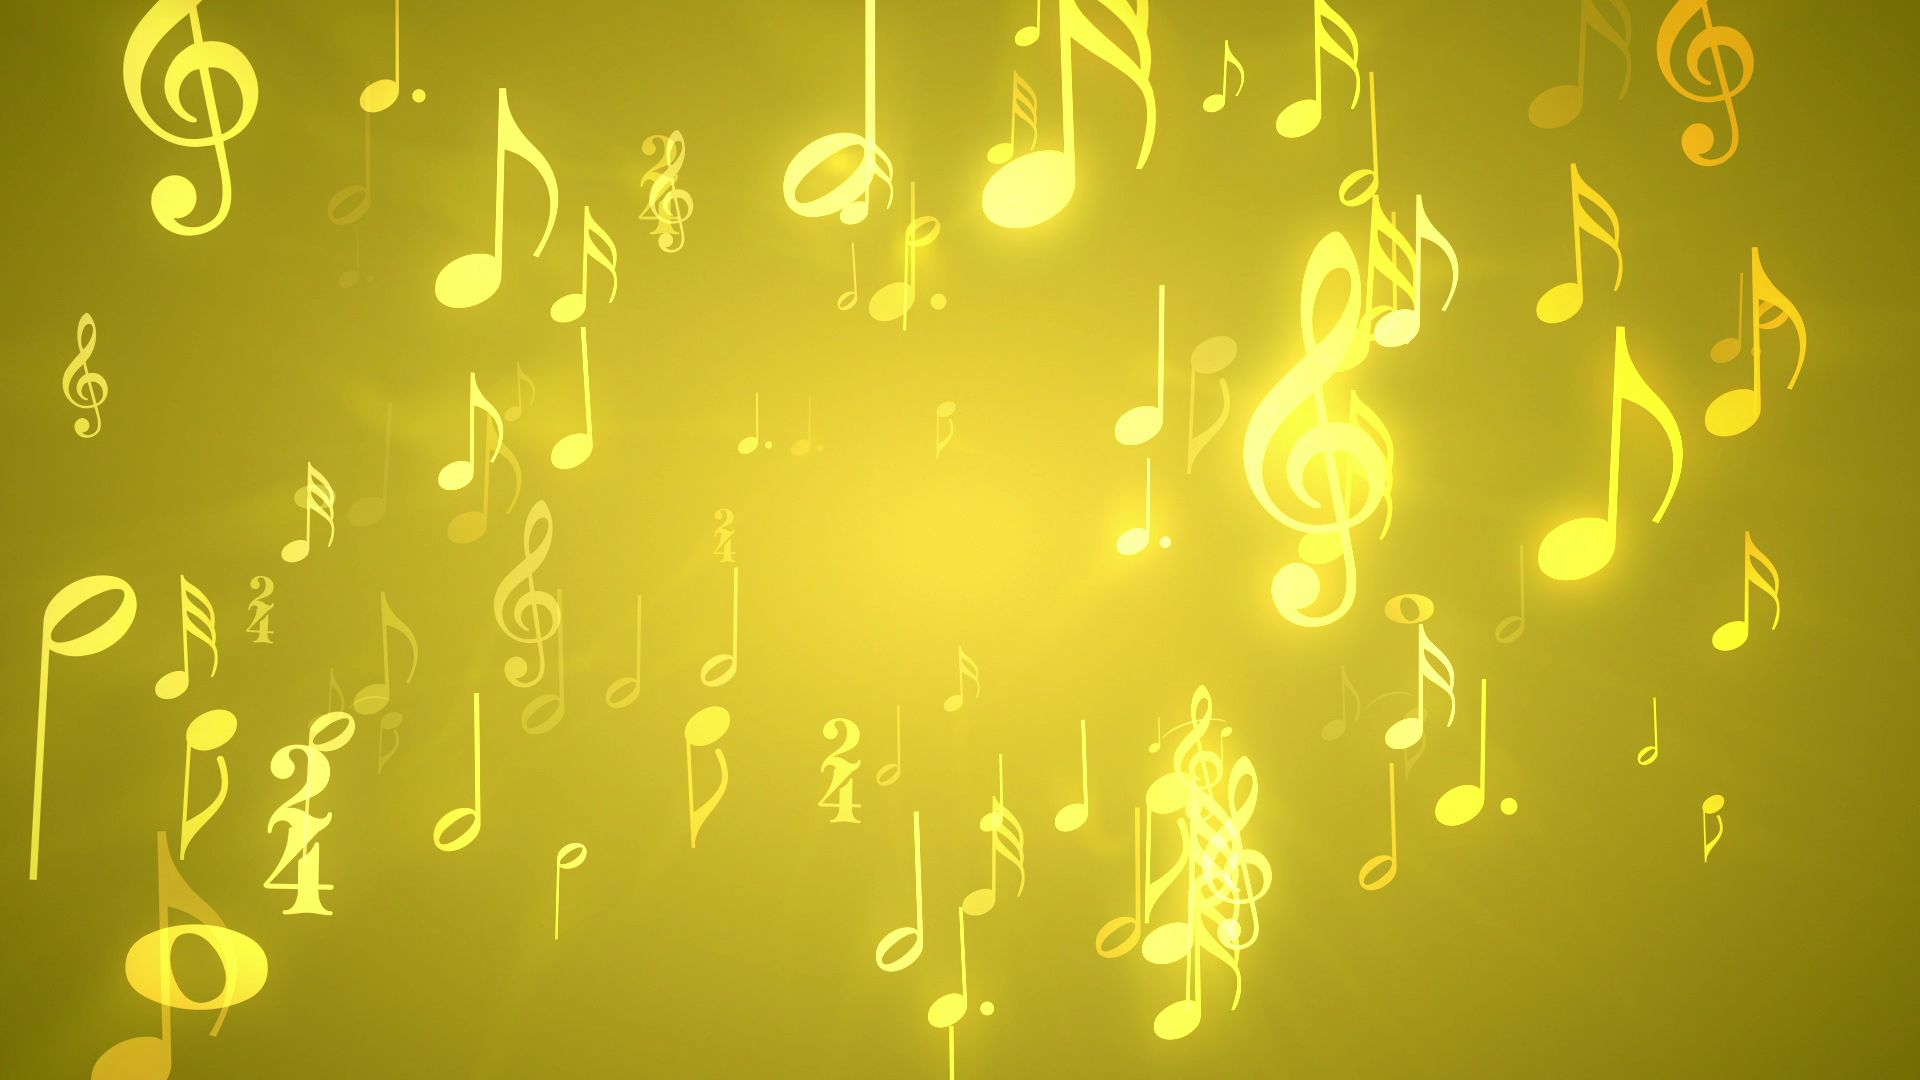 Music Notes Backgrounds: Downloops – Creative Motion Backgrounds